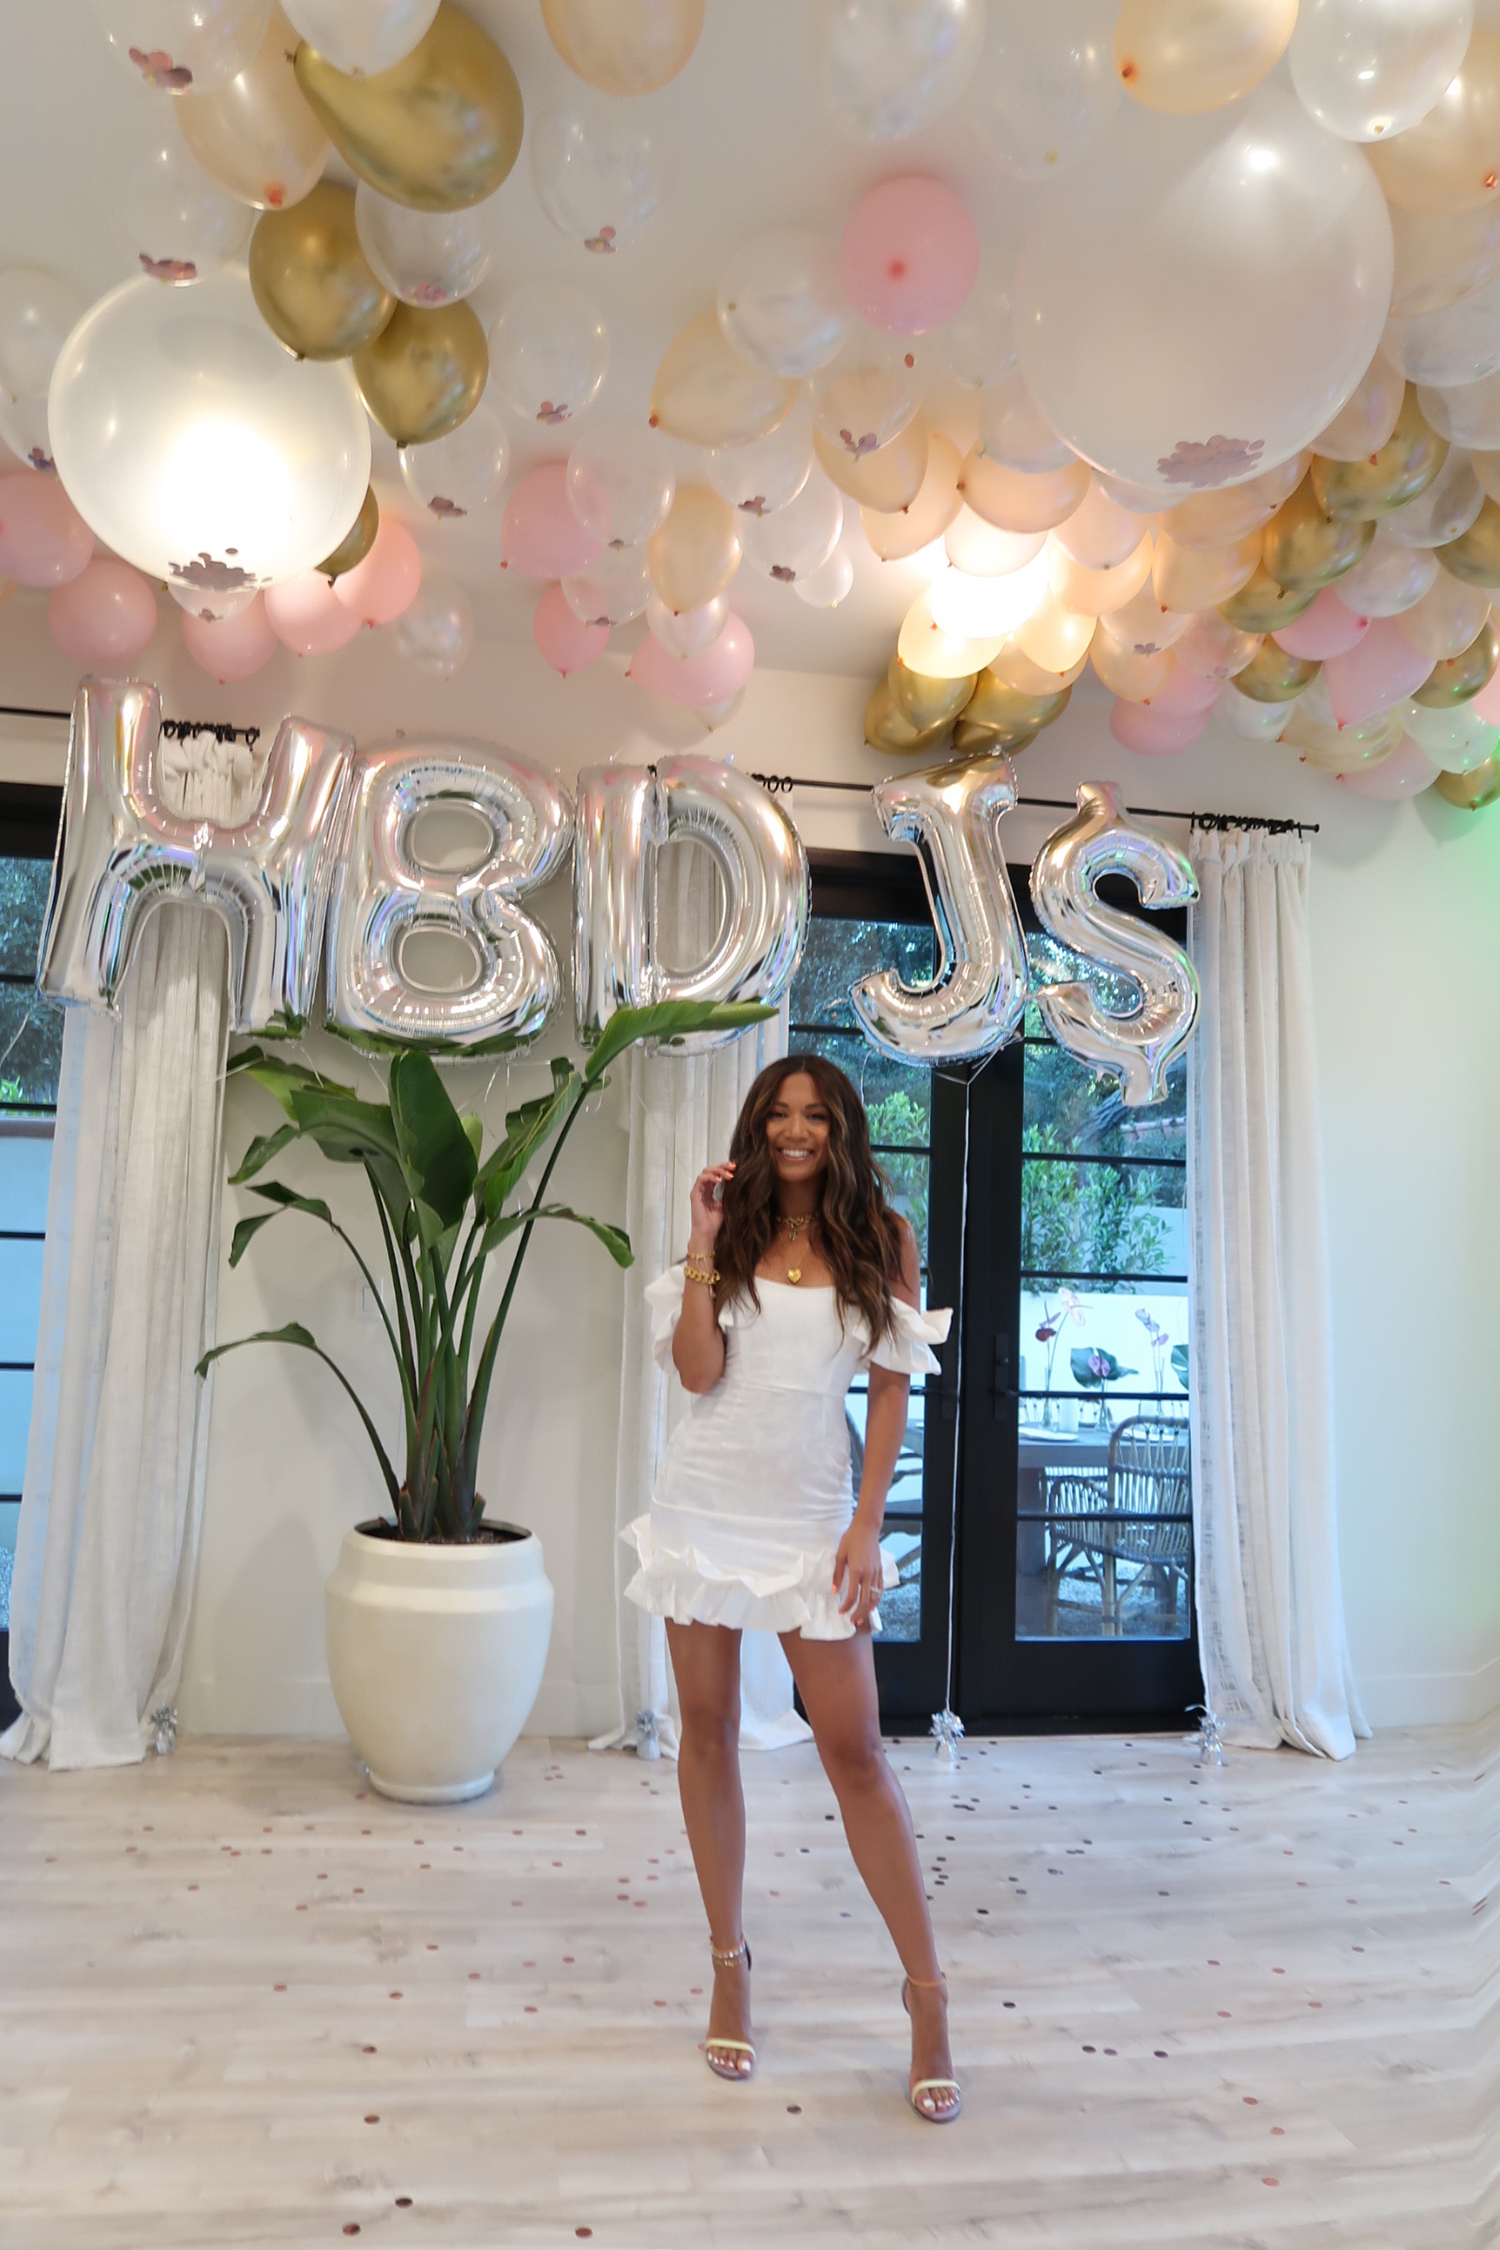 Jessi Malay birthday party 2019